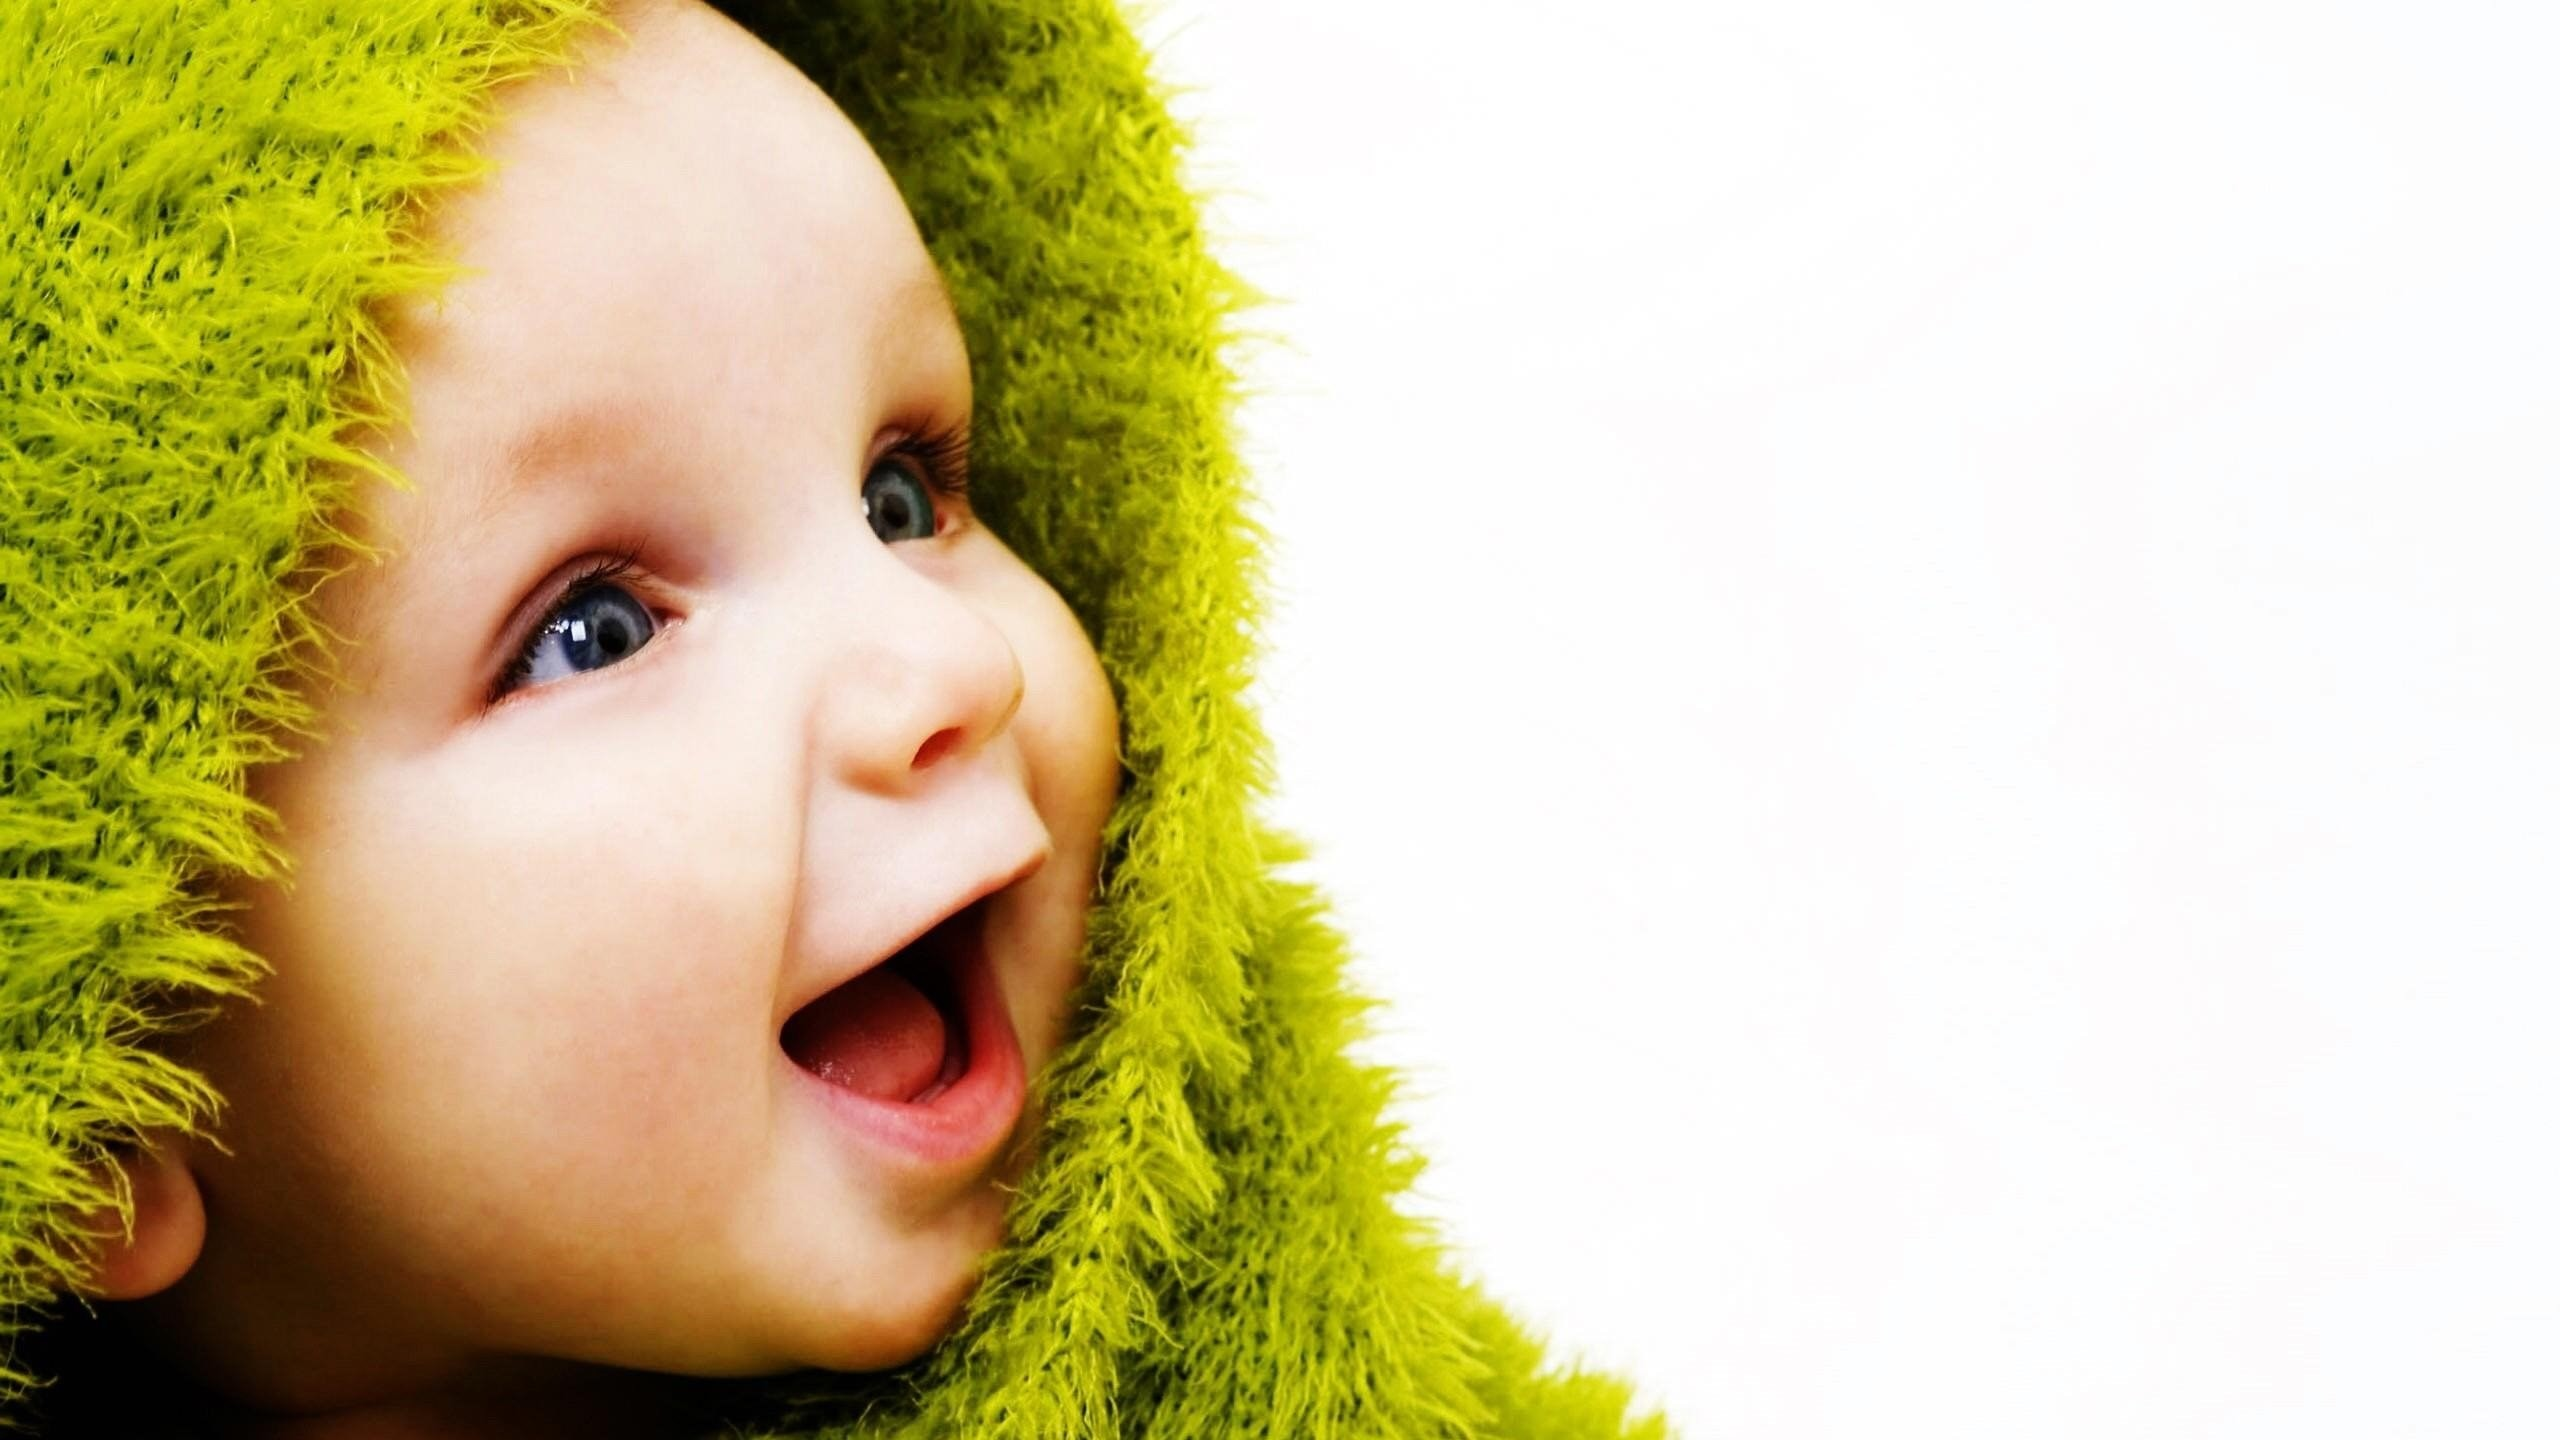 Cute Babies Wallpapers Hd Computer Wallpaper: Cute Baby Boy Pictures Wallpapers (63+ Images